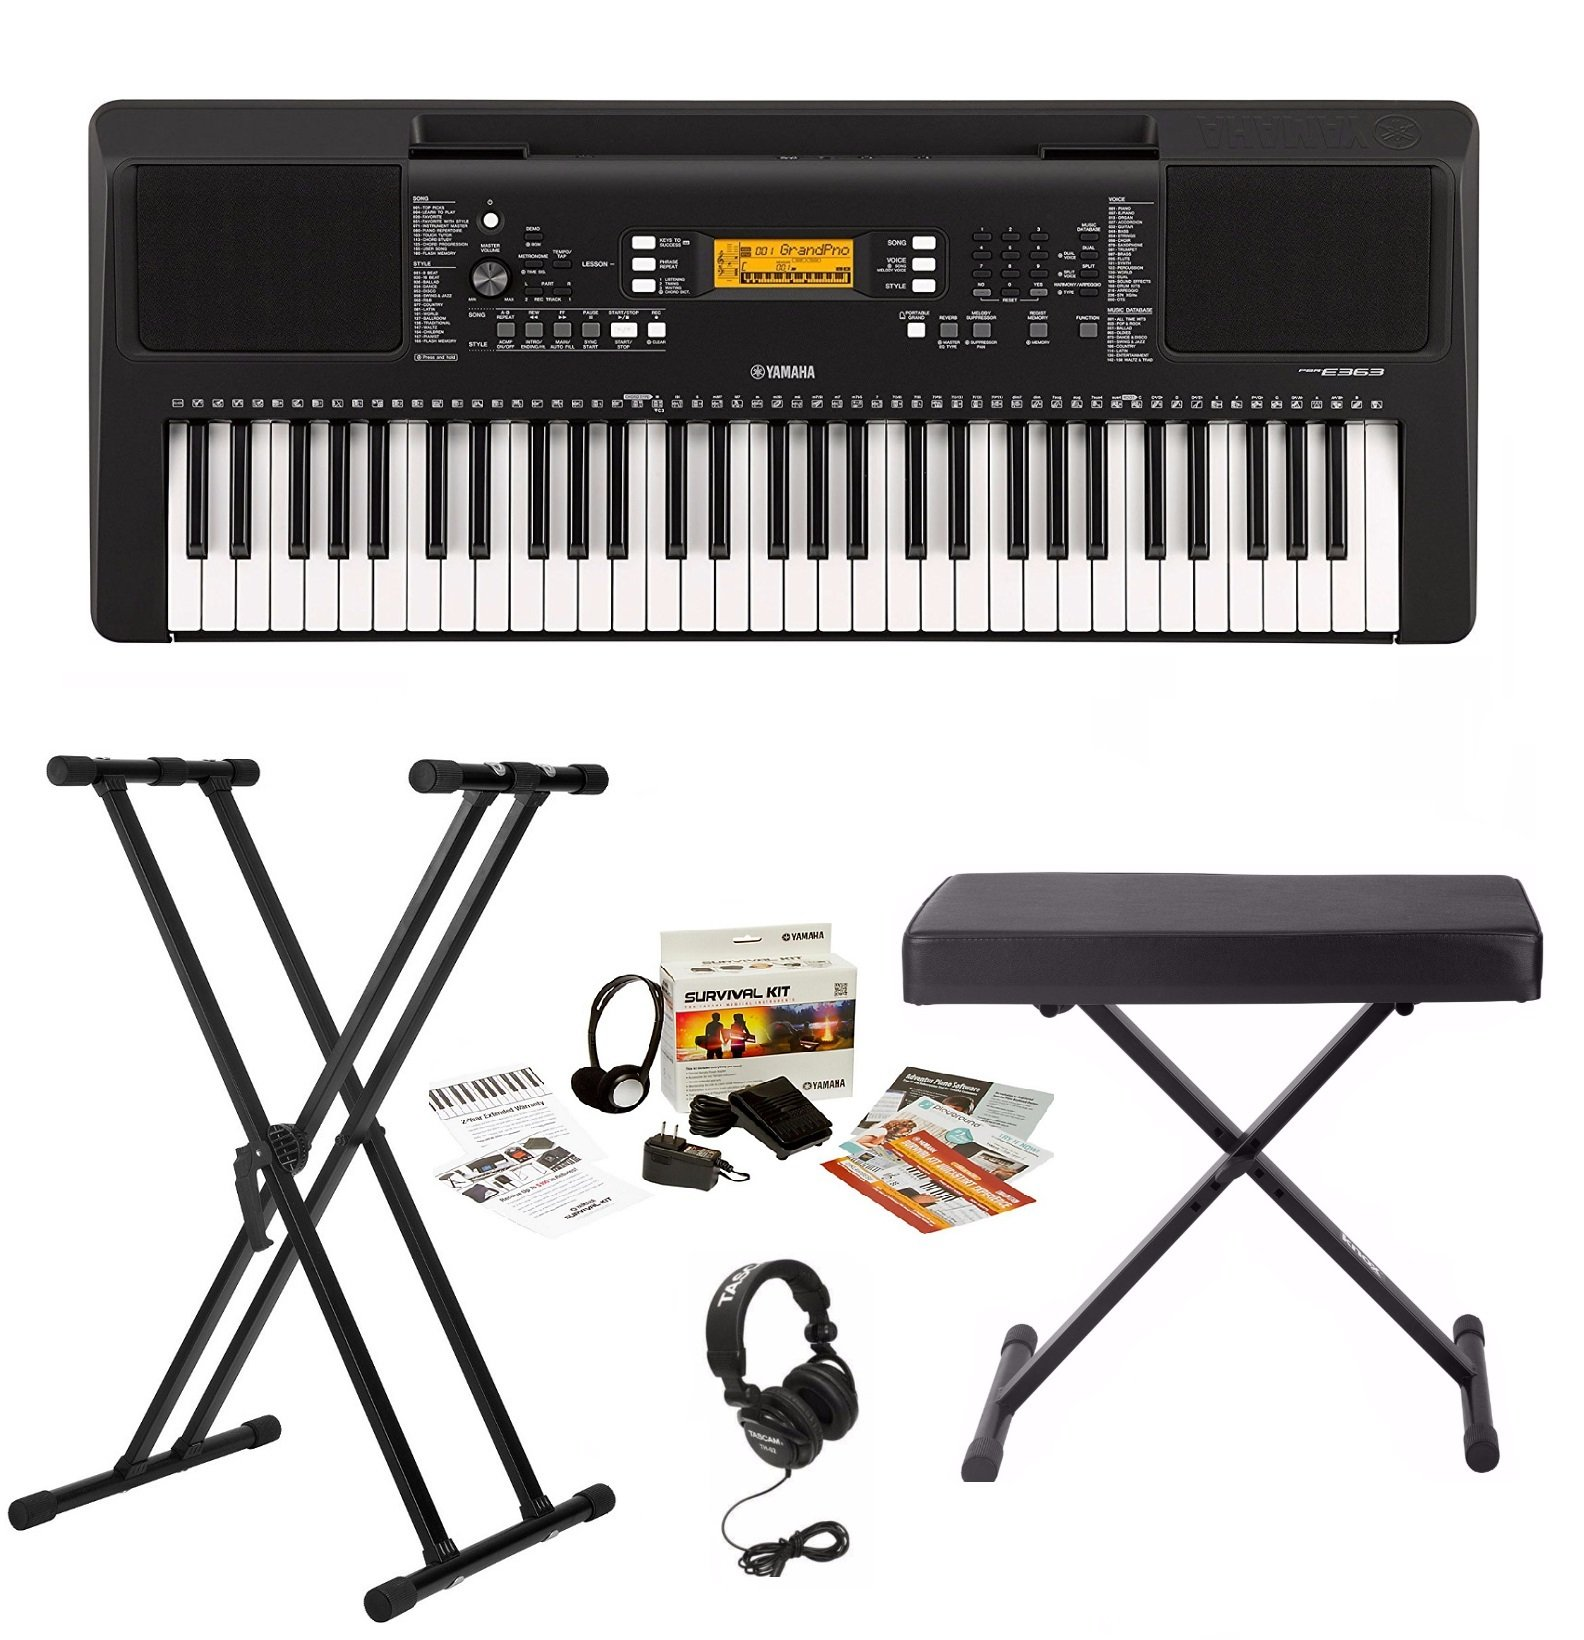 Yamaha PSRE363 Keyboard with Survivalkit, Headphones, Knox Stand and Bench by YAMAHA